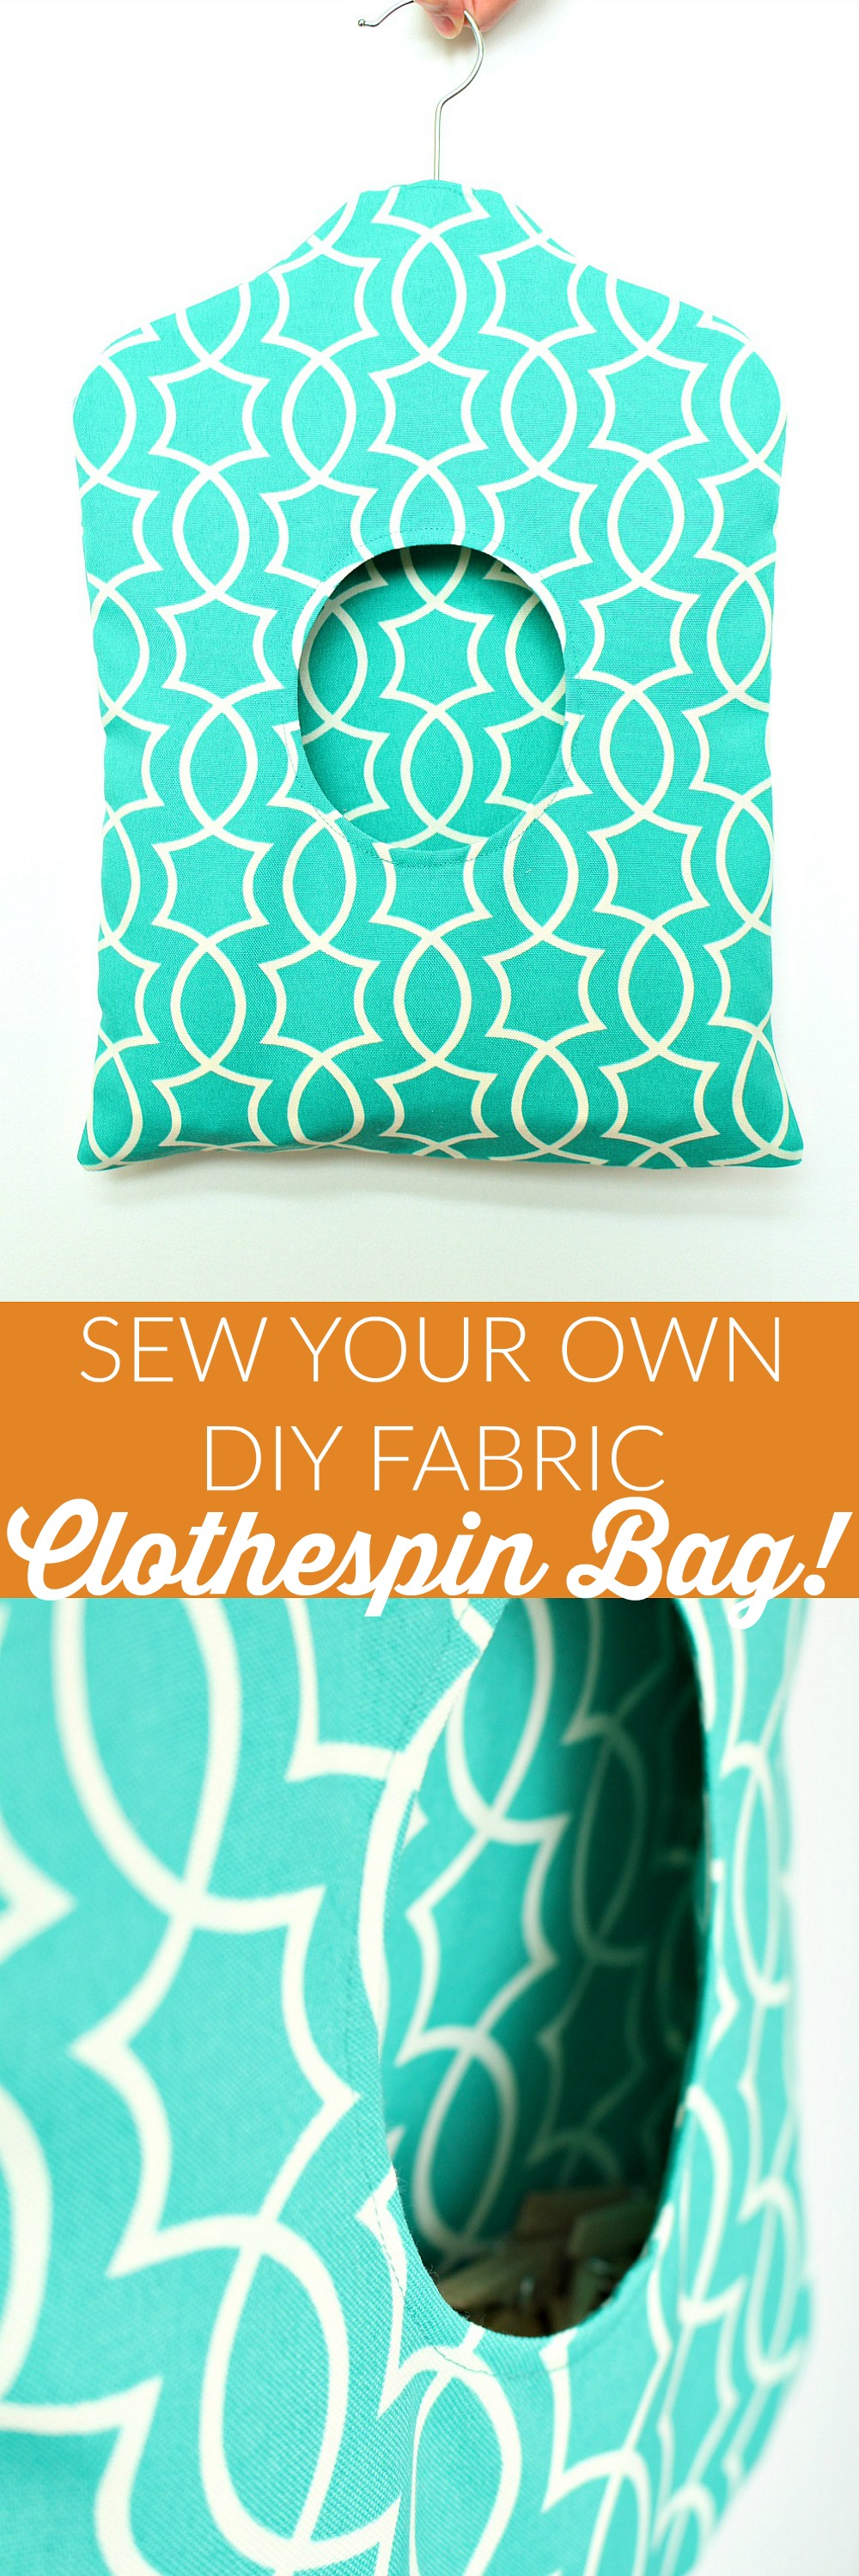 How to sew your own self-lined fabric clothespin holder by @danslelakehouse